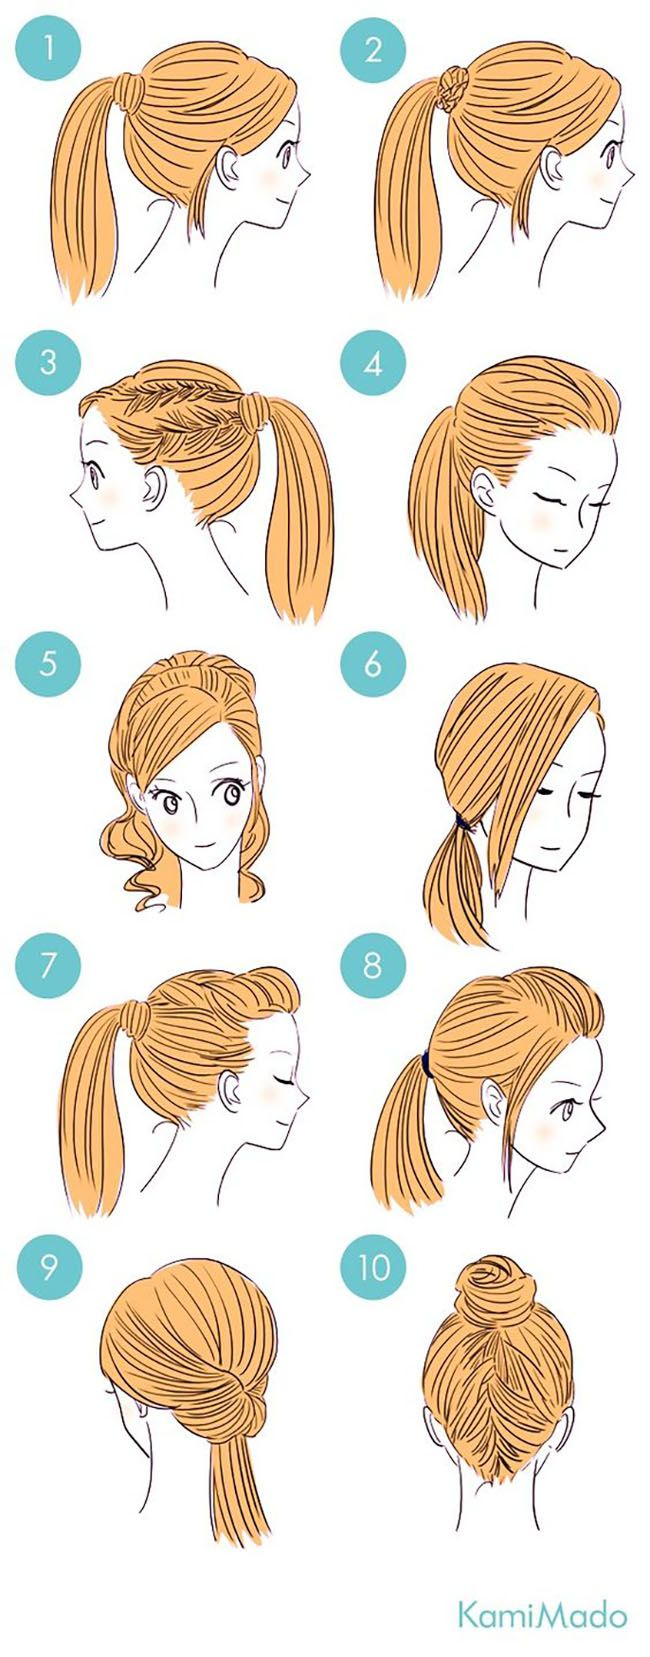 65 Easy And Cute Hairstyles That Can Be Done In Just A Few Minutes Cute Simple Hairstyles Sweet Hairstyles Long Hair Styles